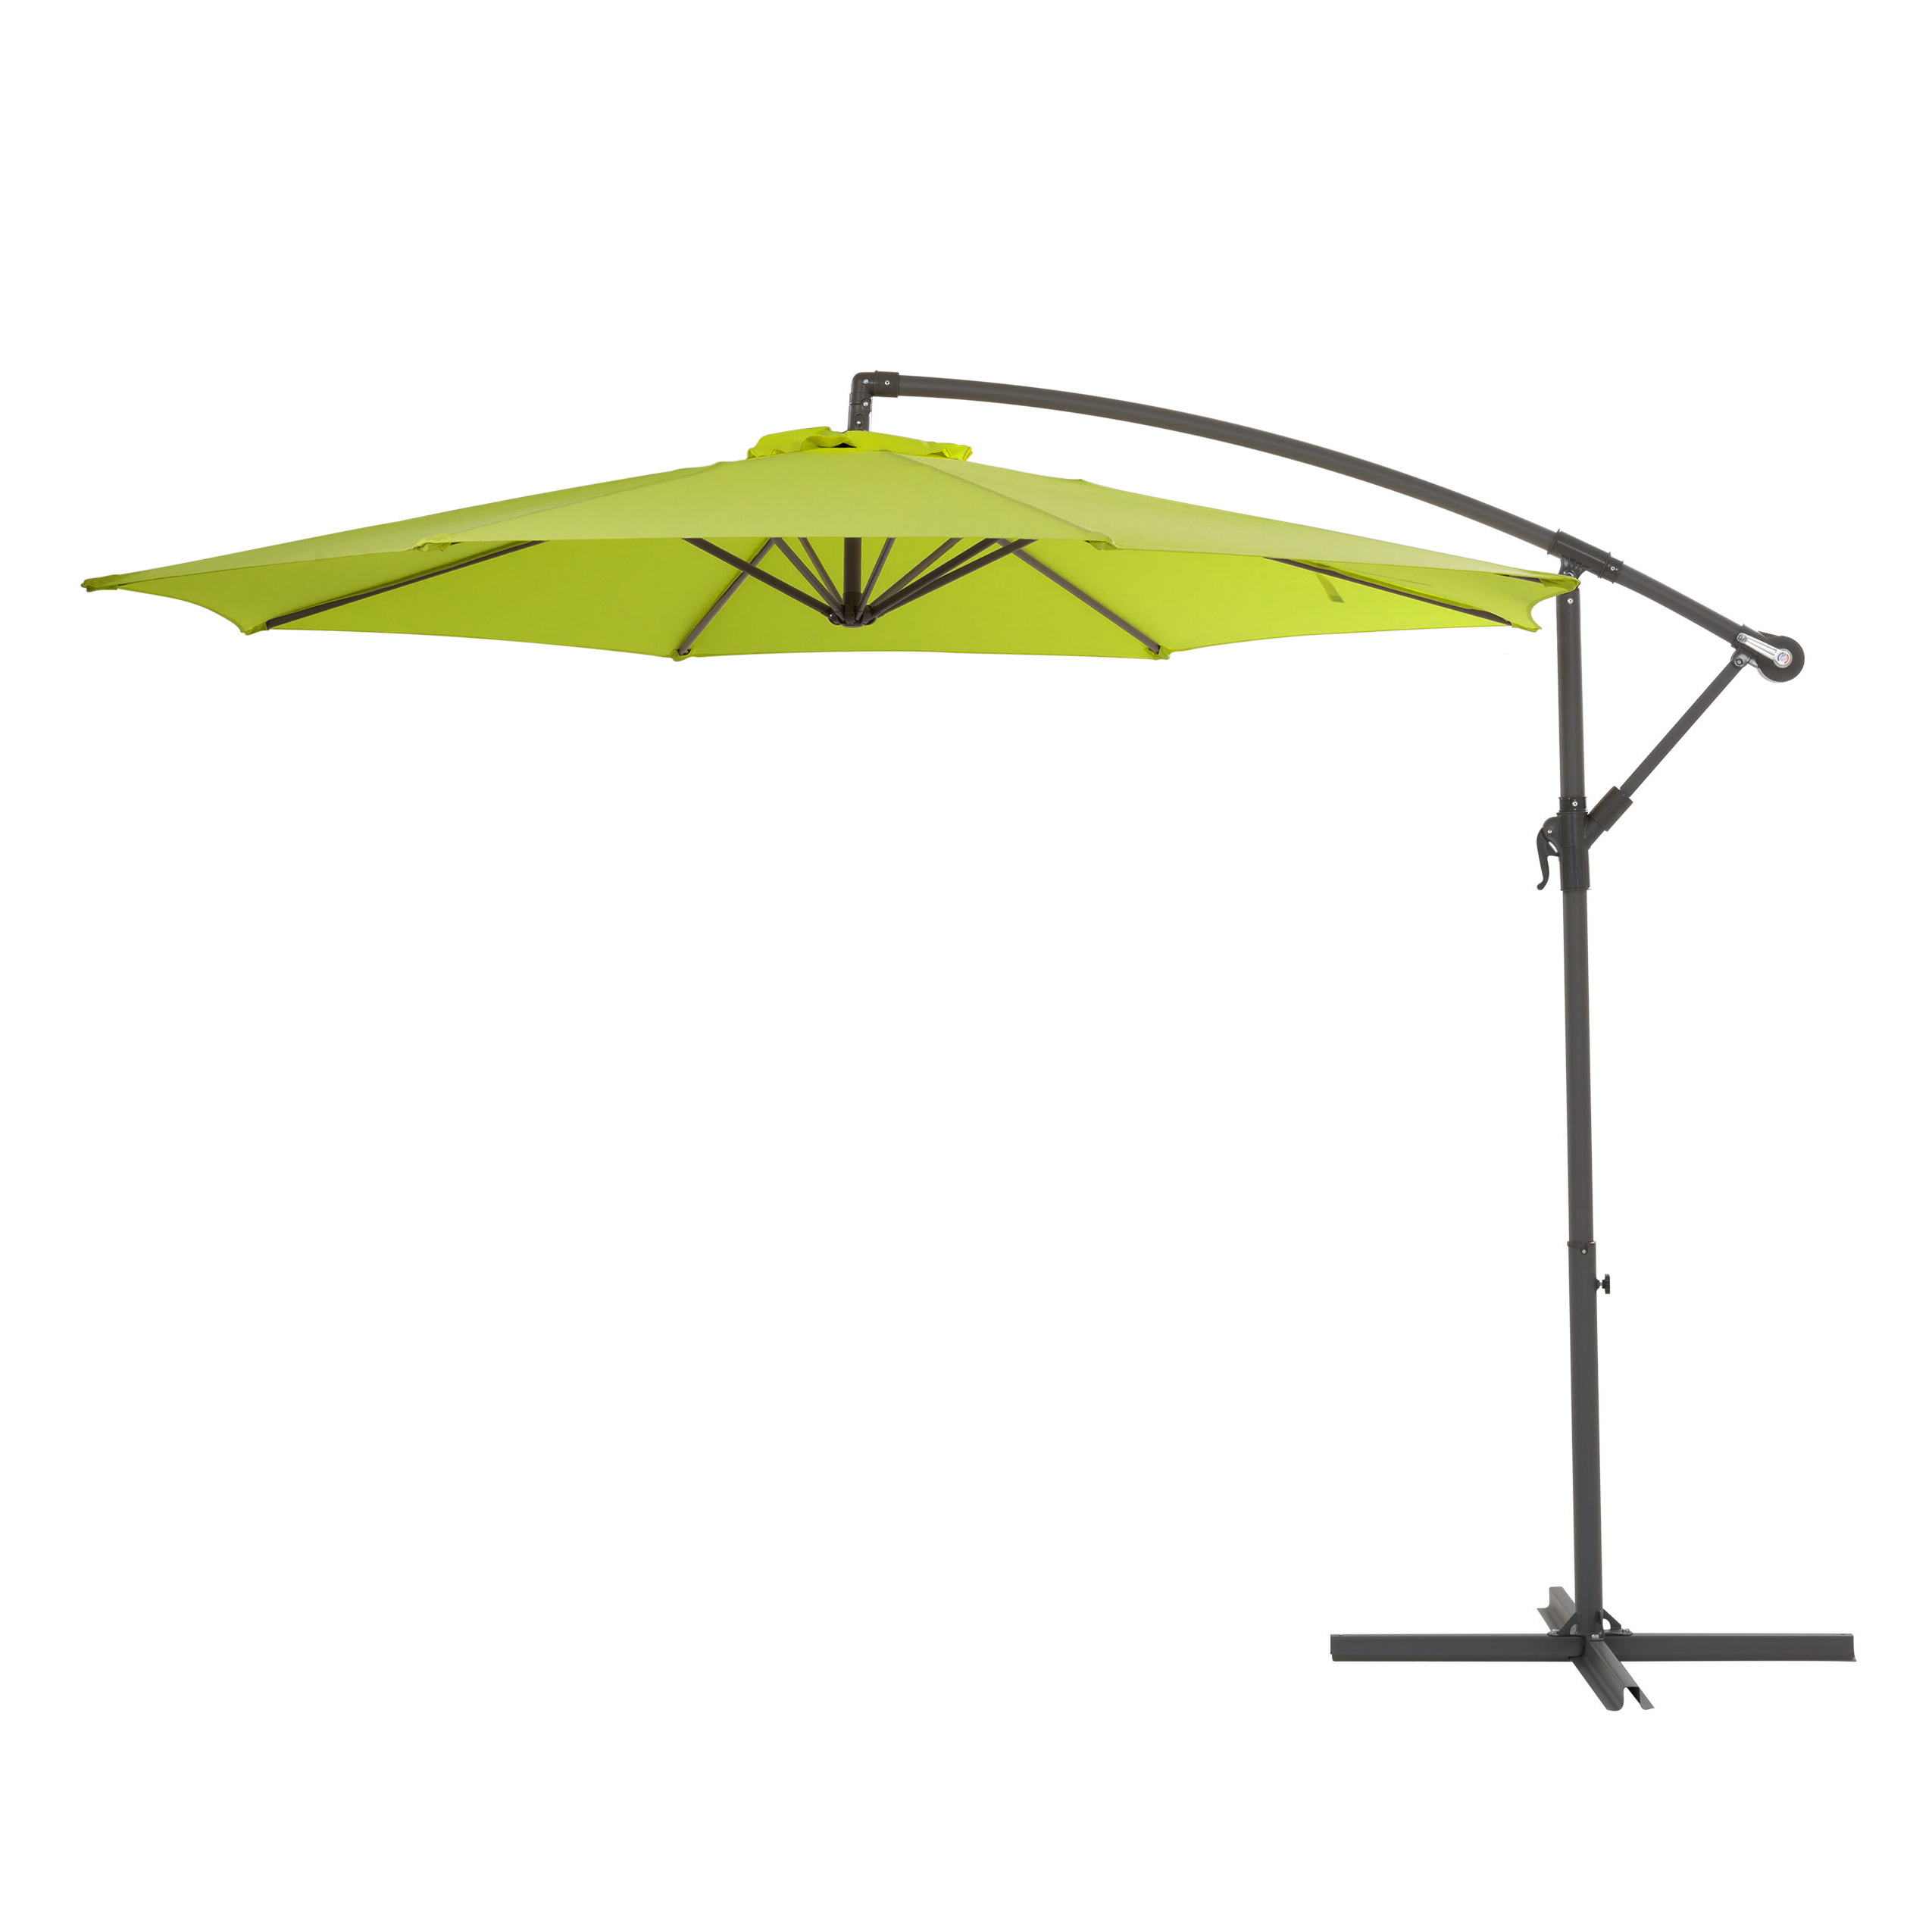 Latest Wardingham Square Cantilever Umbrellas Throughout Freda 9.5' Cantilever Umbrella (Gallery 17 of 20)